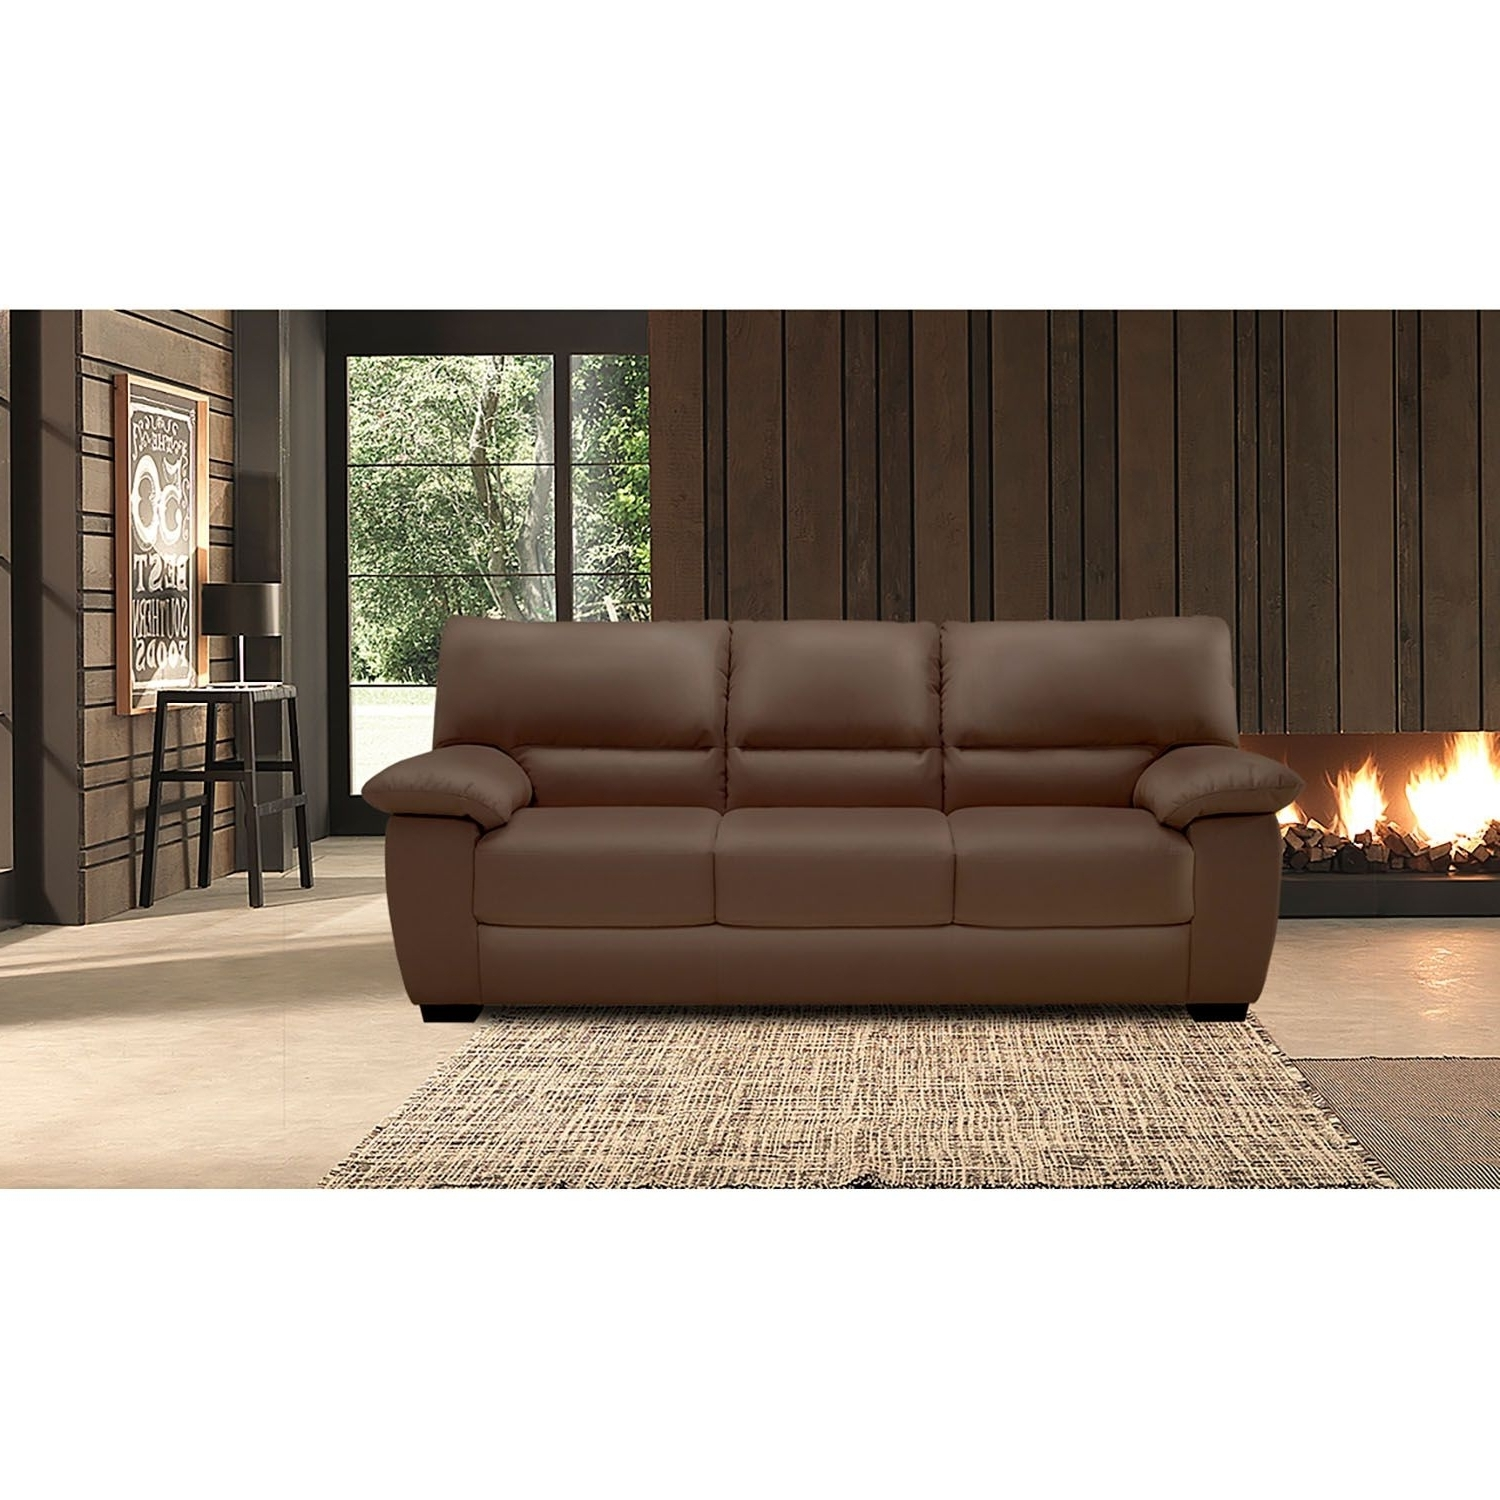 Most Recent Sectional Sofas At Sam's Club For Leather Motion Sofa Sams Club • Leather Sofa (View 8 of 15)